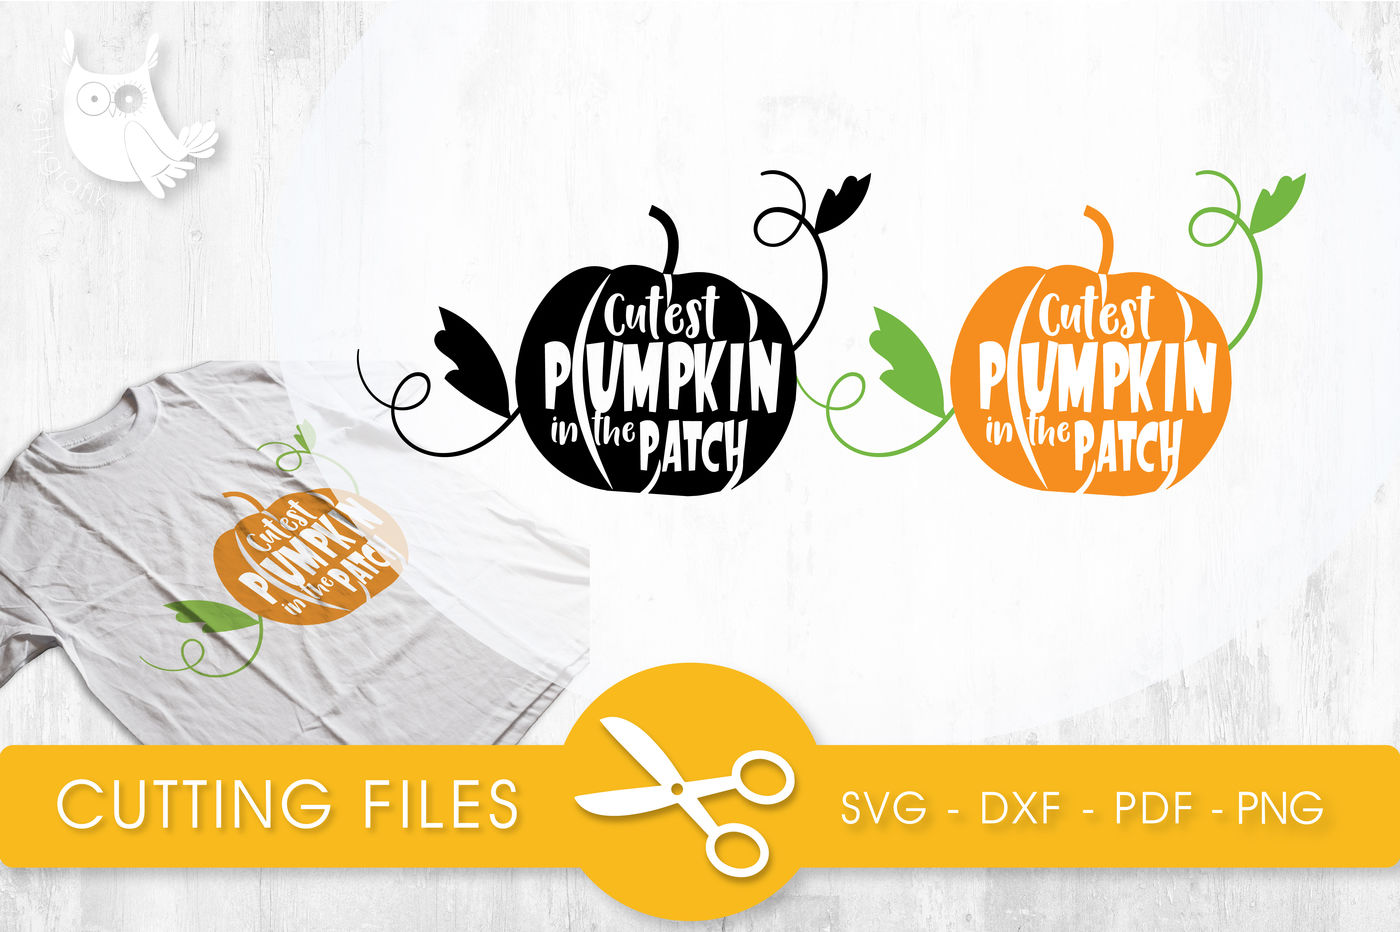 Cutest Pumpkin In The Patch Svg Png Eps Dxf Cut File By Prettycuttables Thehungryjpeg Com